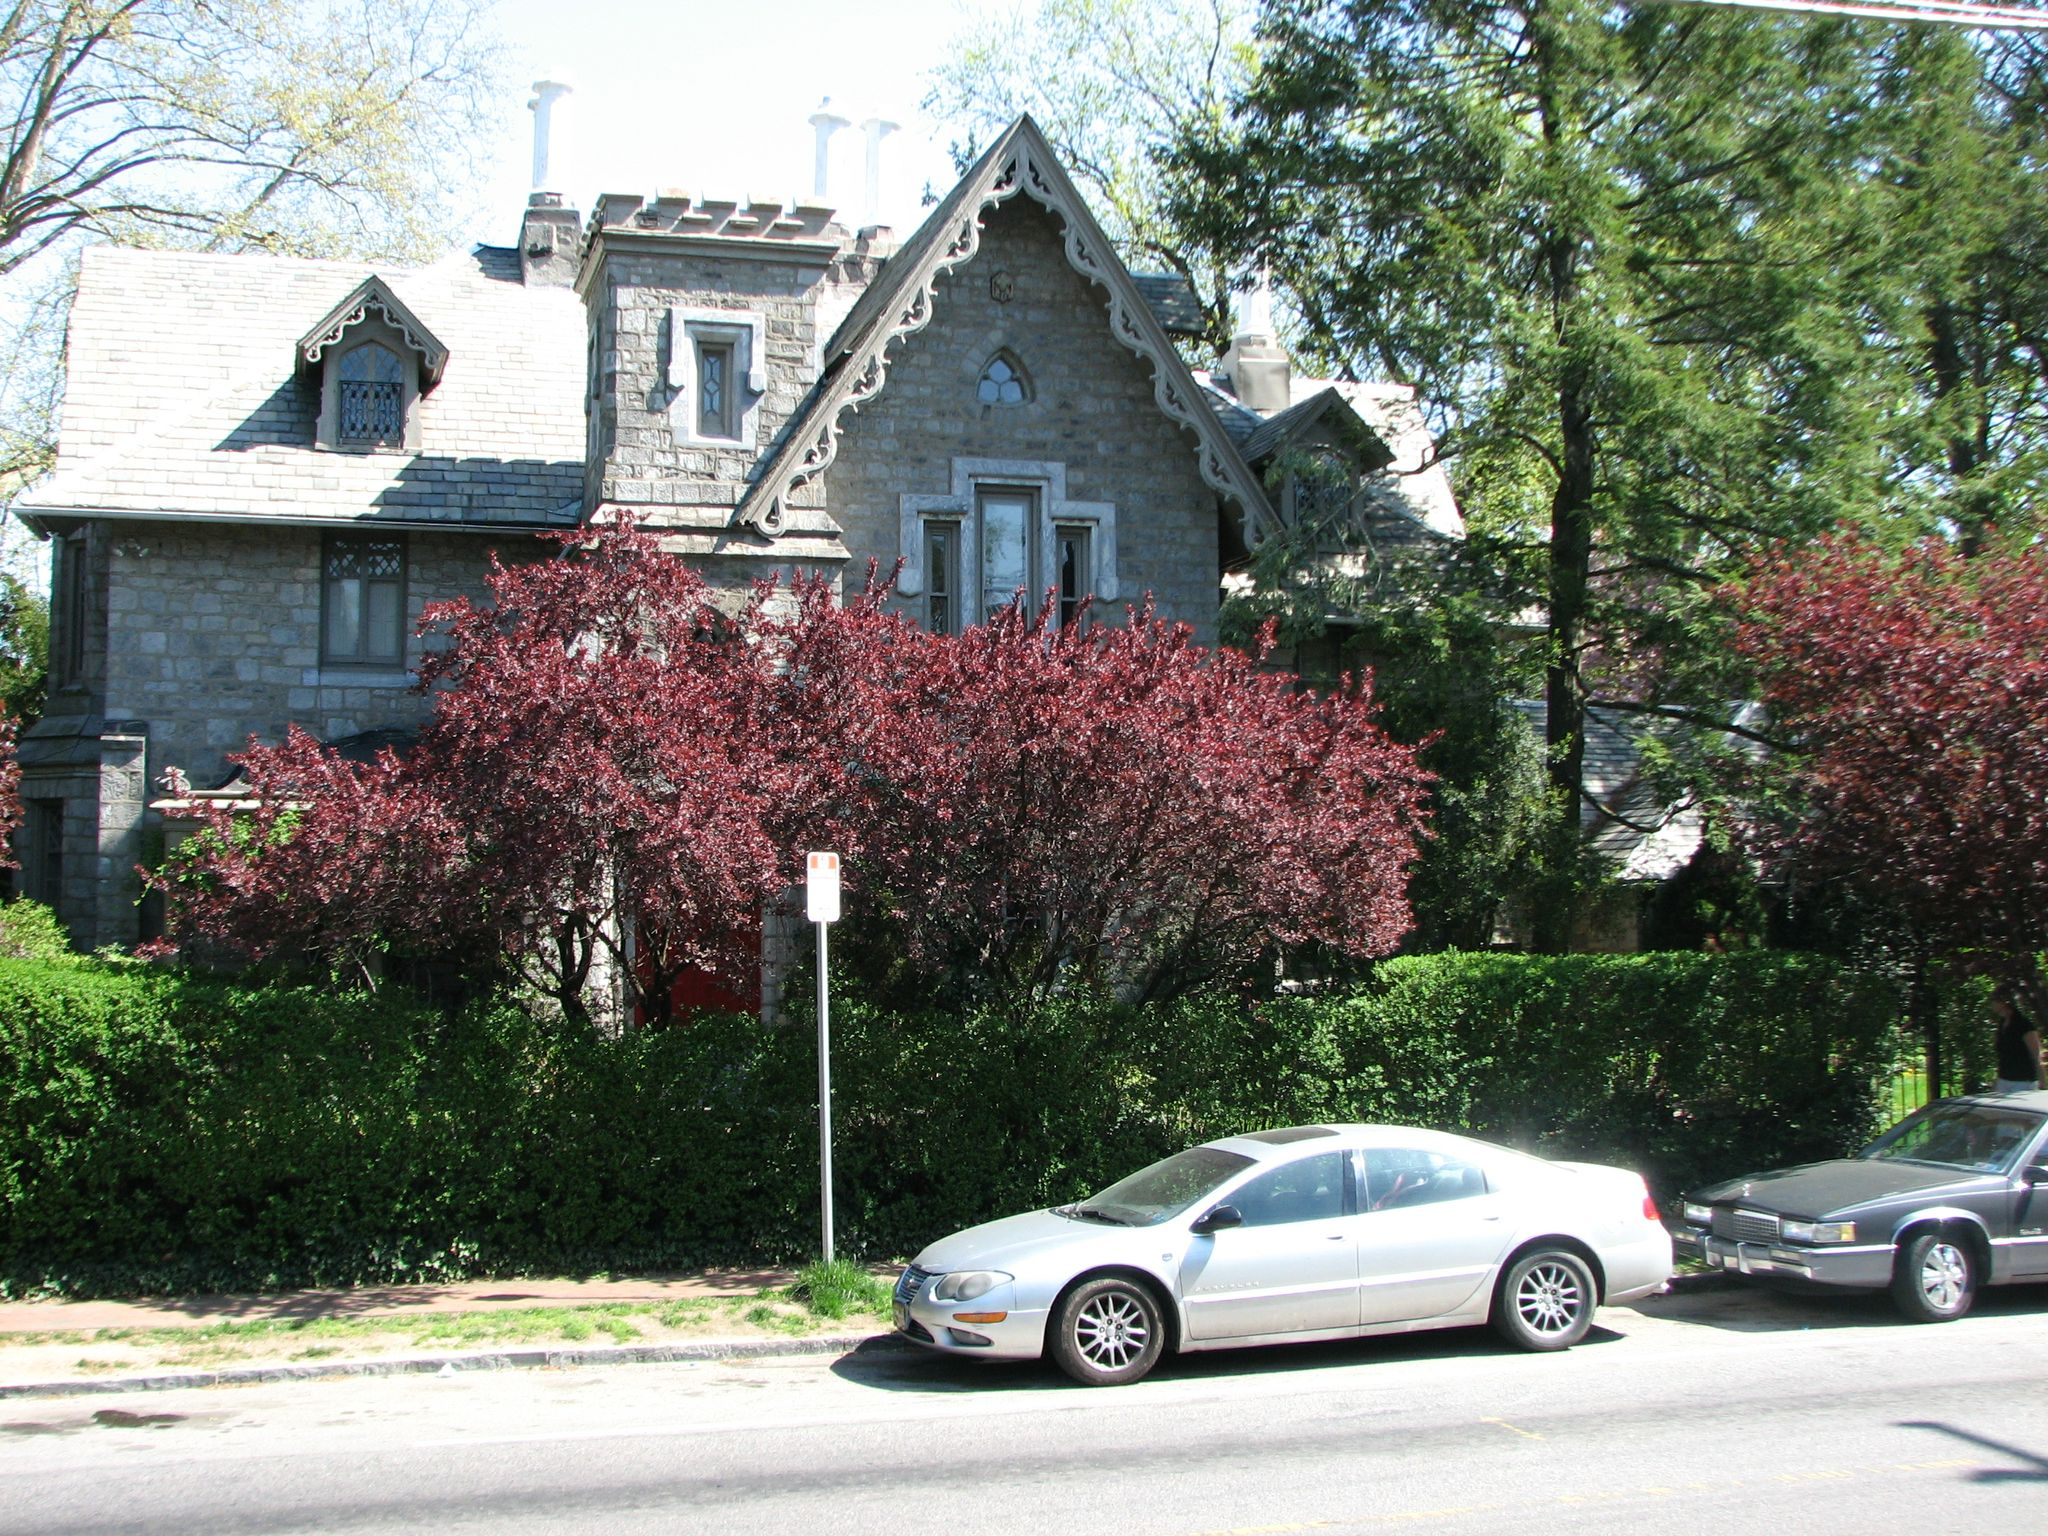 The Mitchell House, 200 West Walnut Lane, is wrapped in boxwood, cherry trees, and storybook mystique.